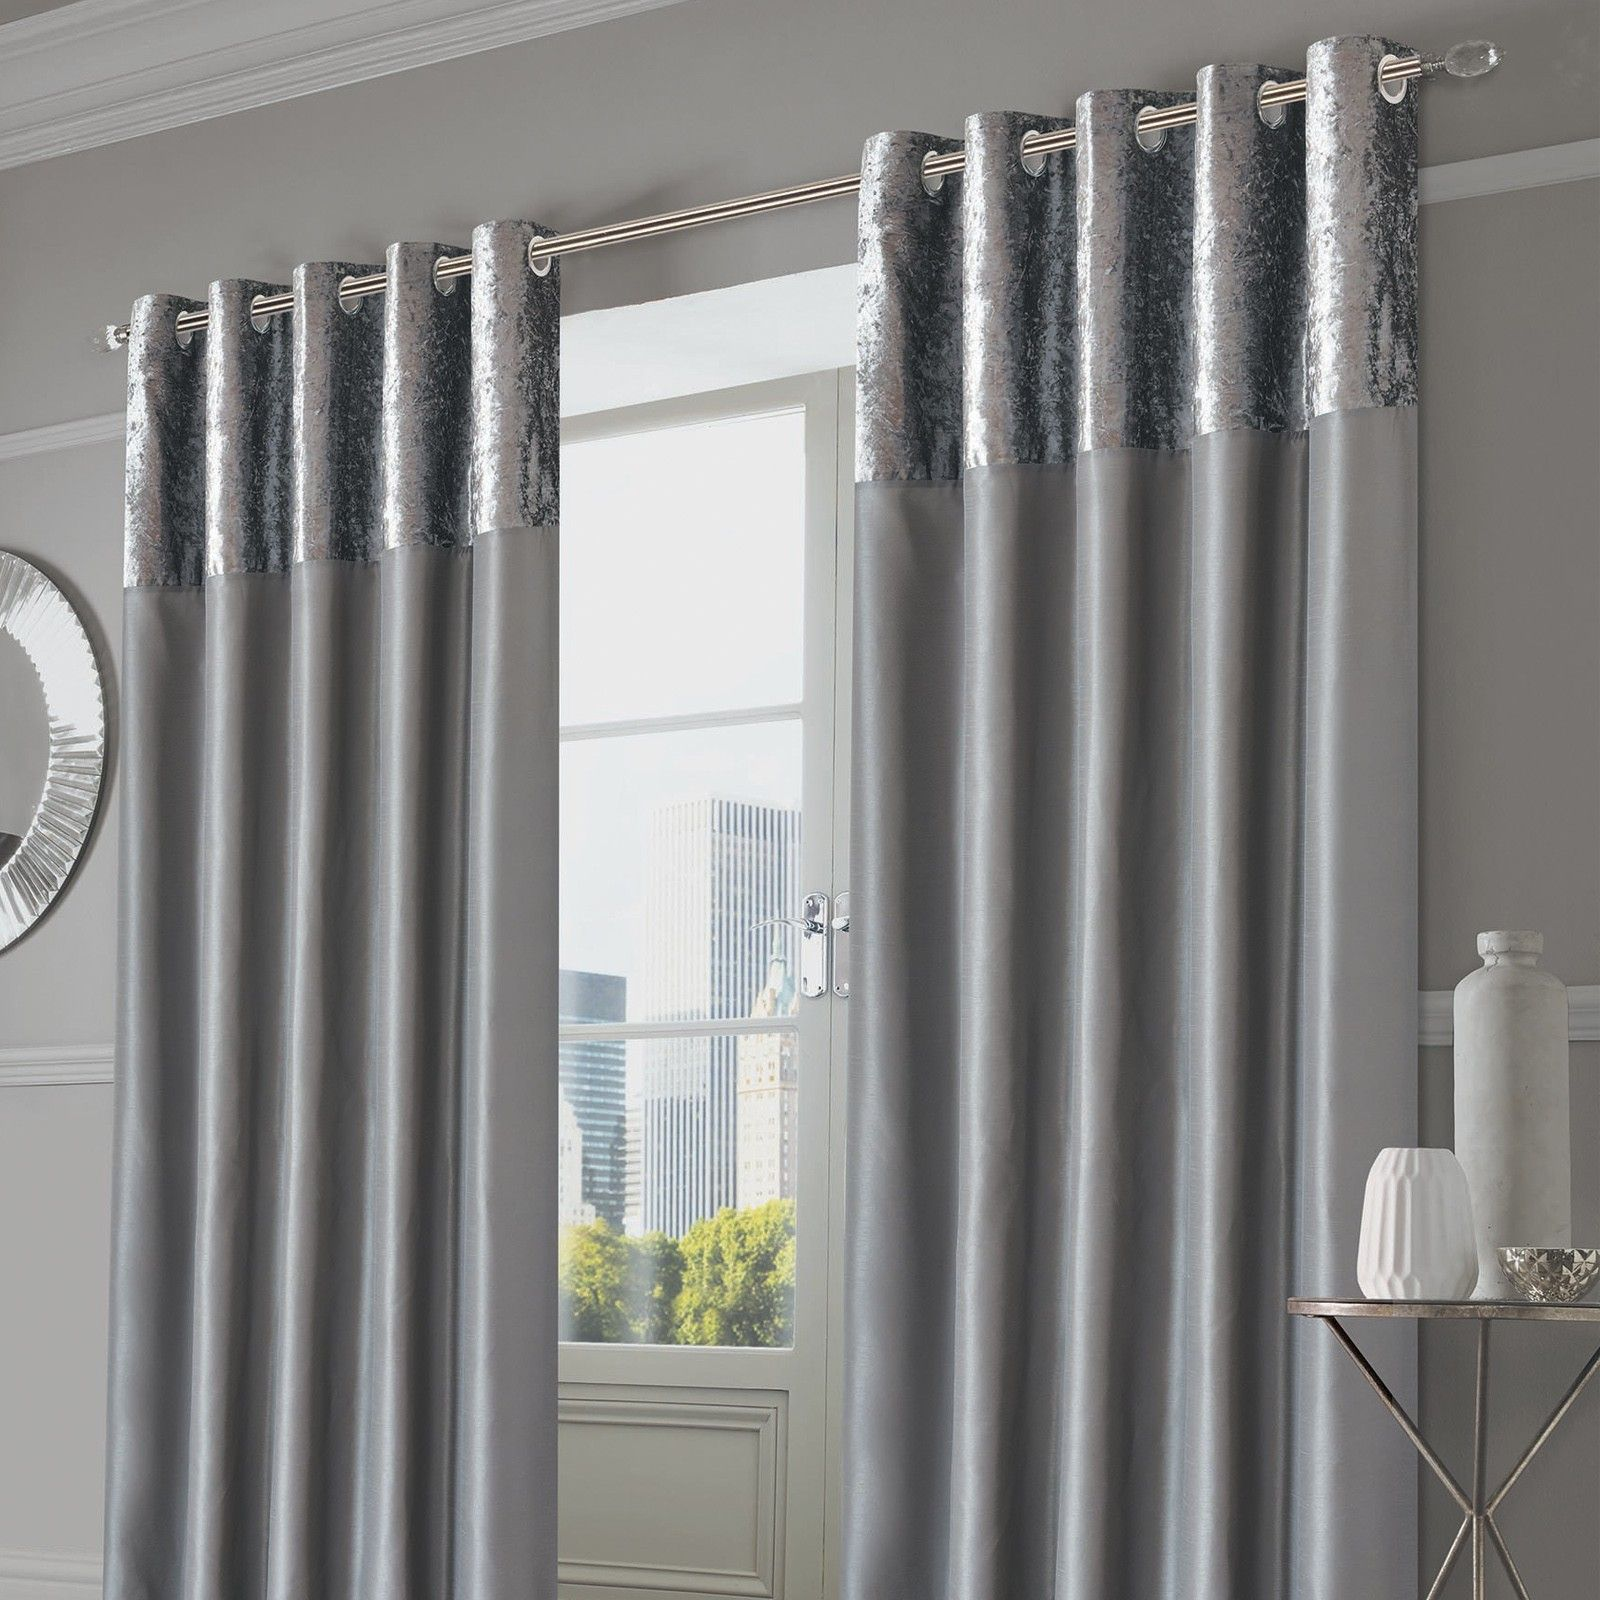 Sienna Home Crushed Velvet Band Eyelet Curtains Silver Grey Grey Curtains Living Room Curtains Curtains Crushed Velvet